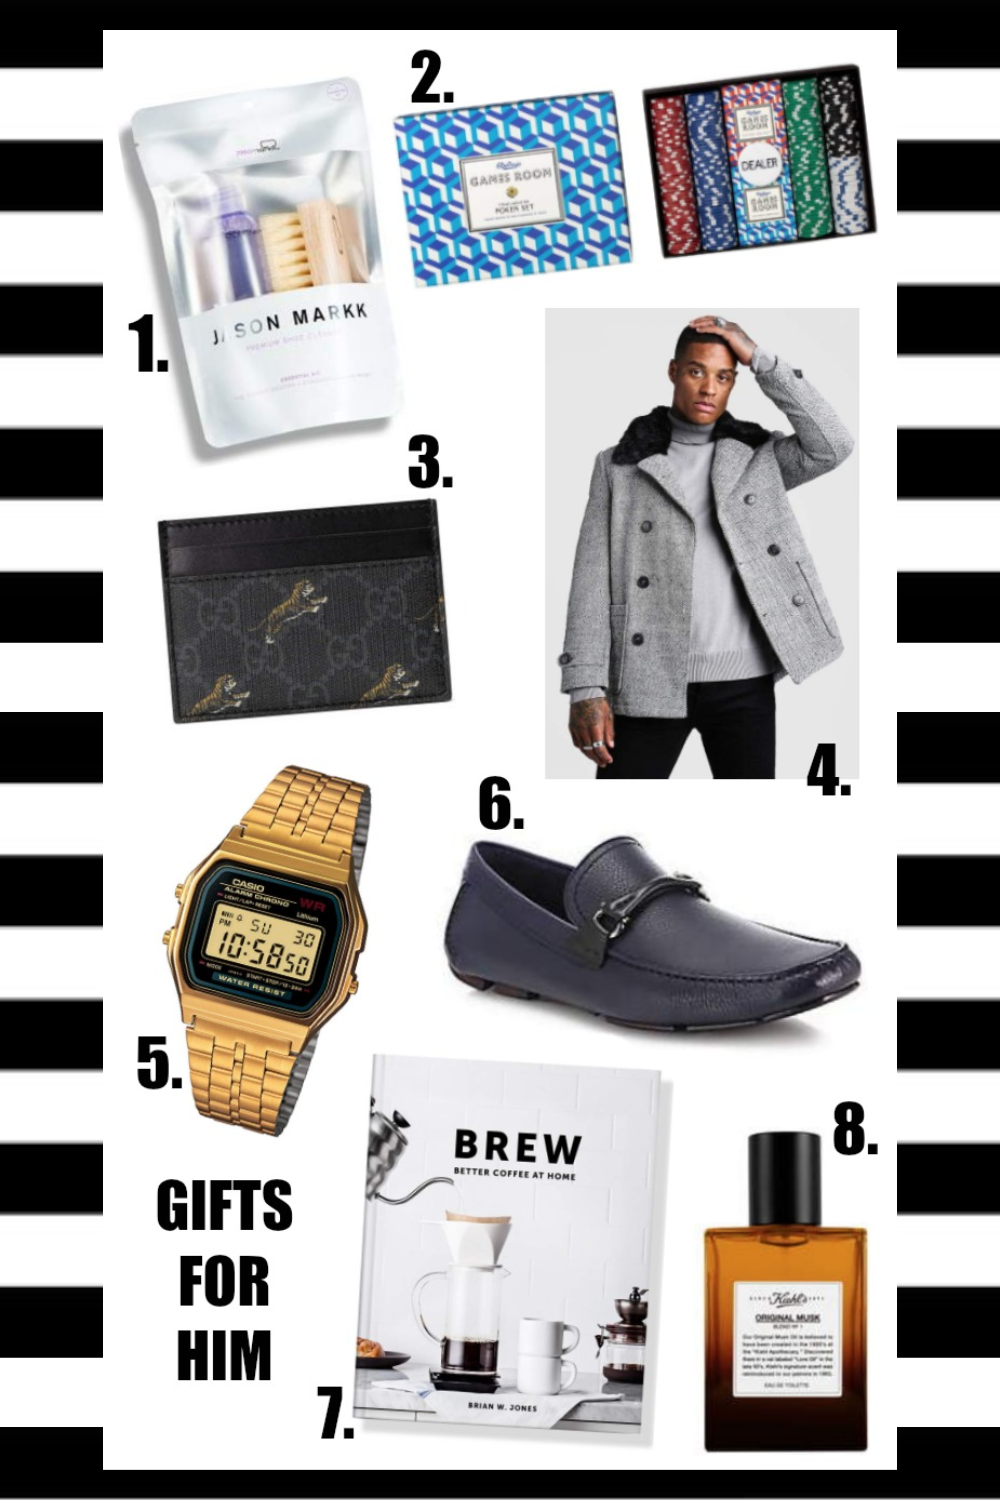 2019 last minute christmas gifts for him from supplechic a fashion and lifestyle blog based in Baltimore